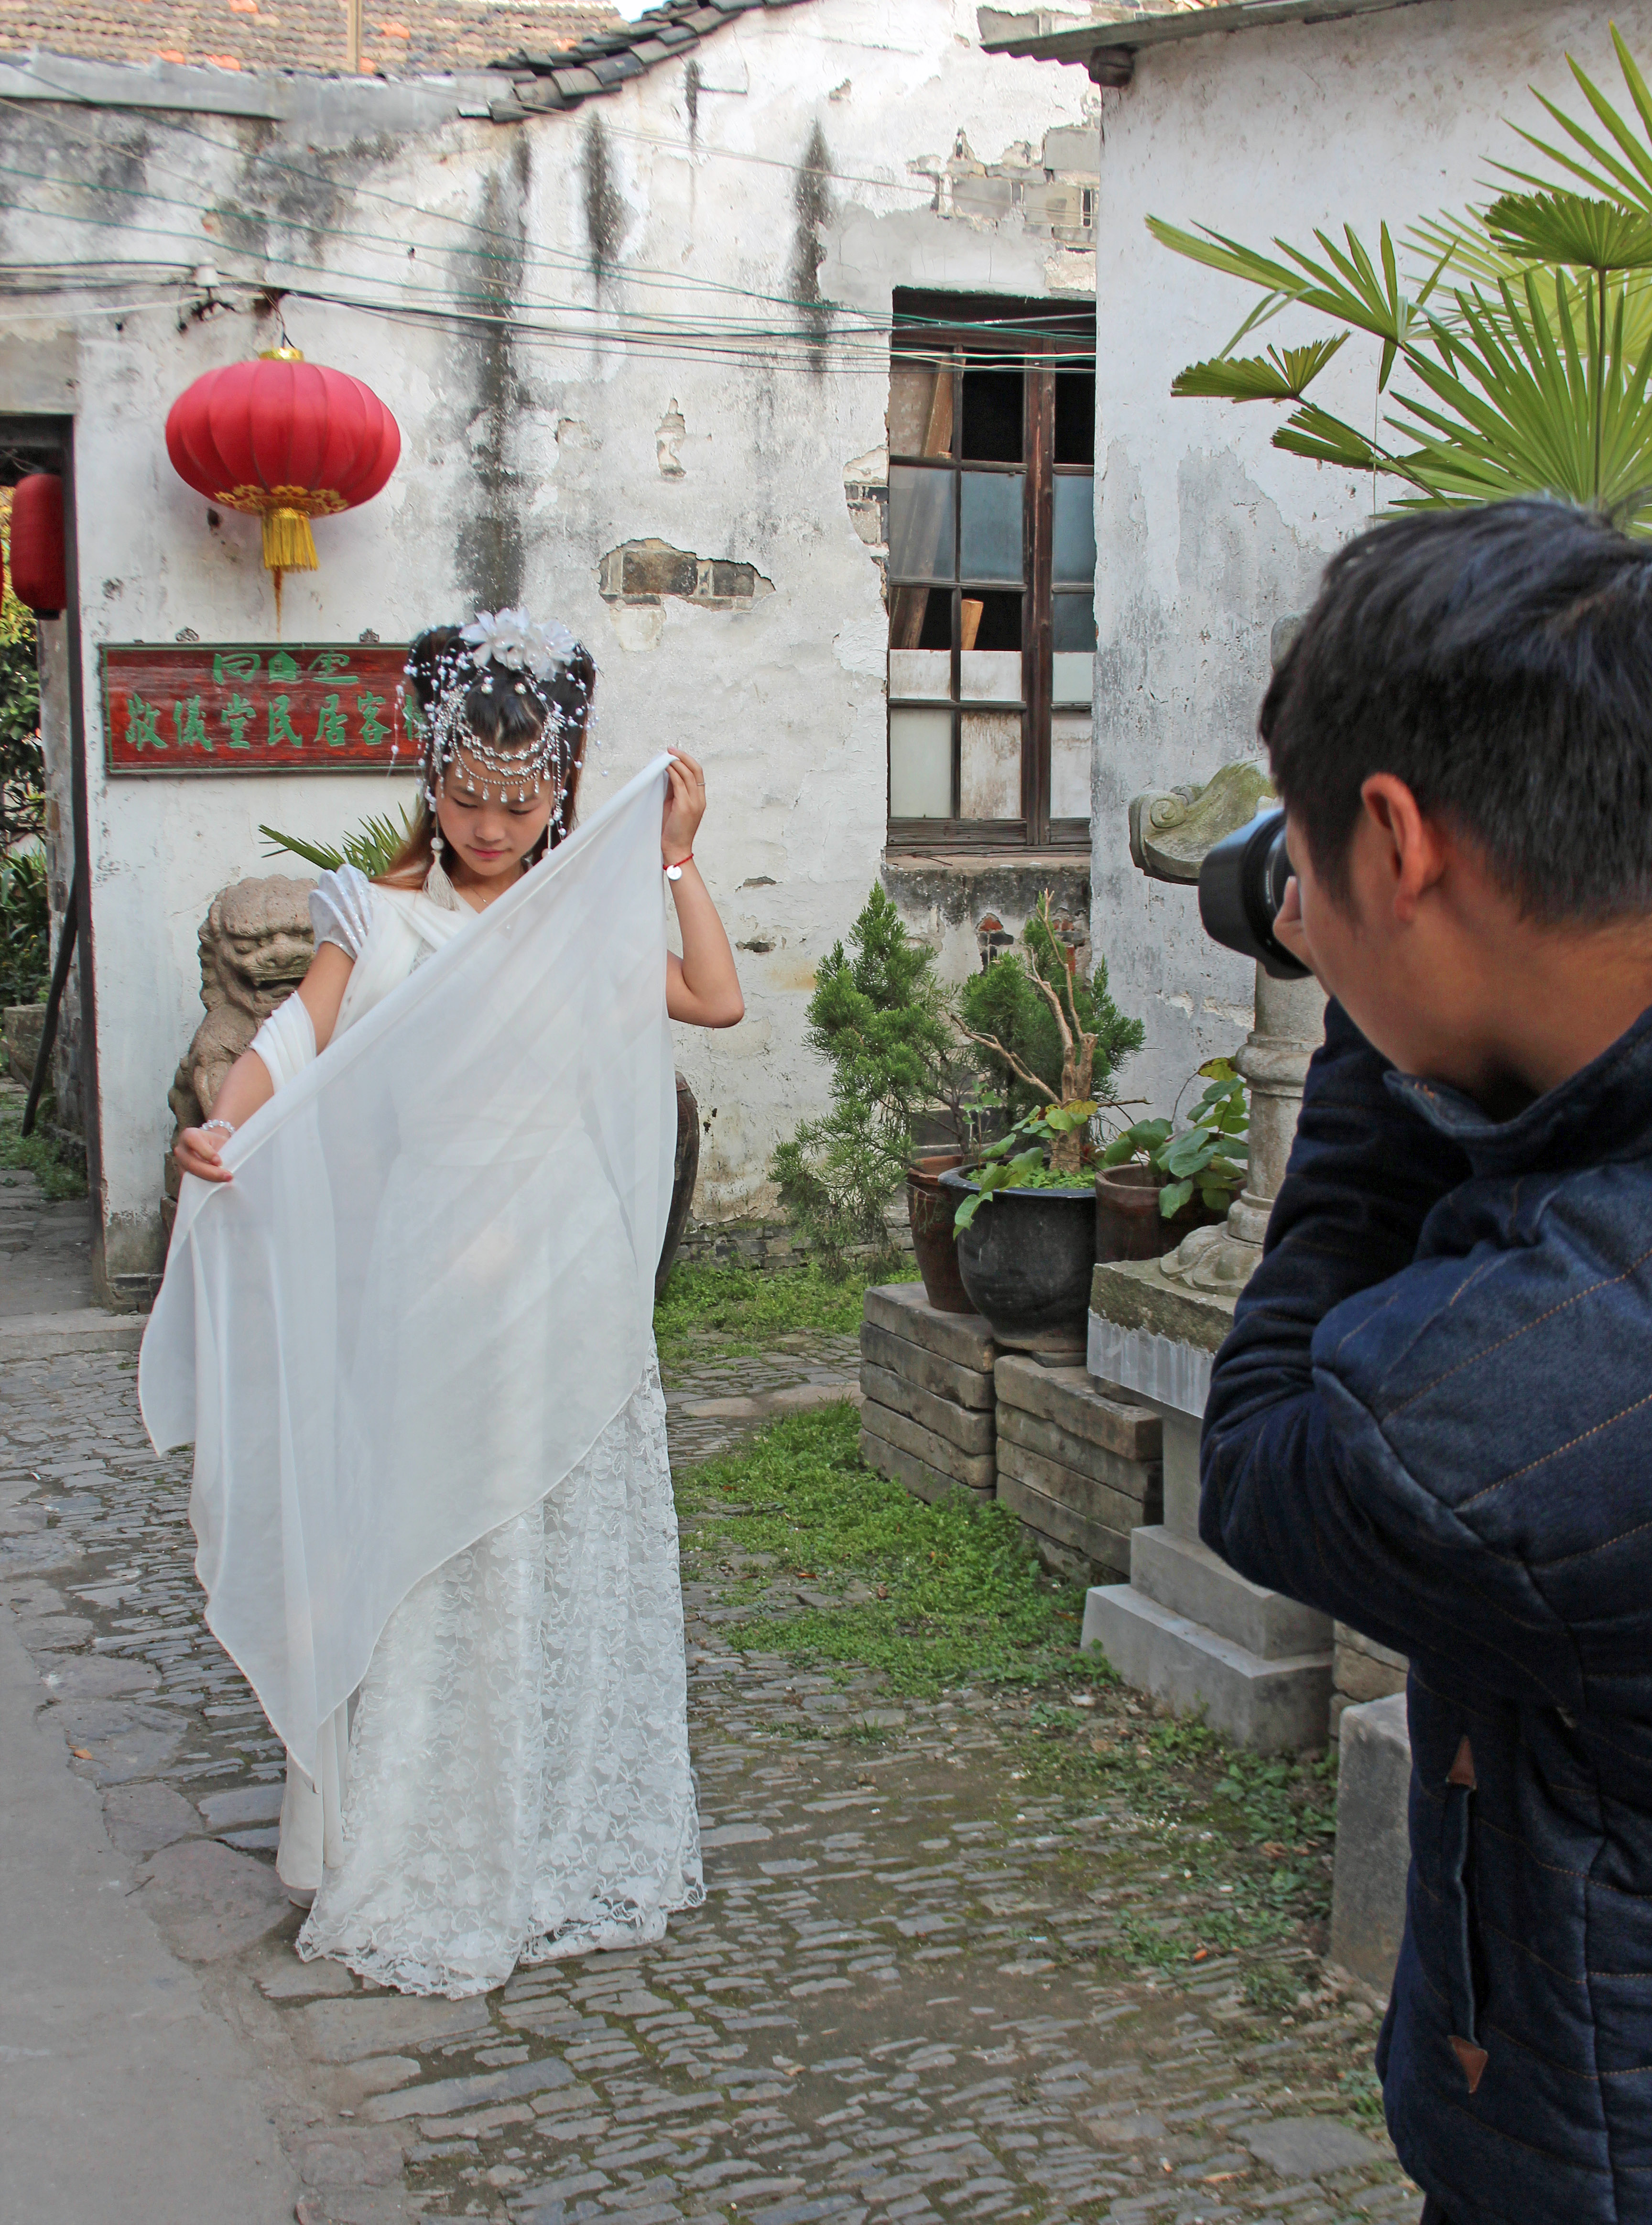 The alleyways of Tongli town in China serve as a backdrop for a bridal photo shoot. Photo by Larisa Epatko/PBS NewsHour